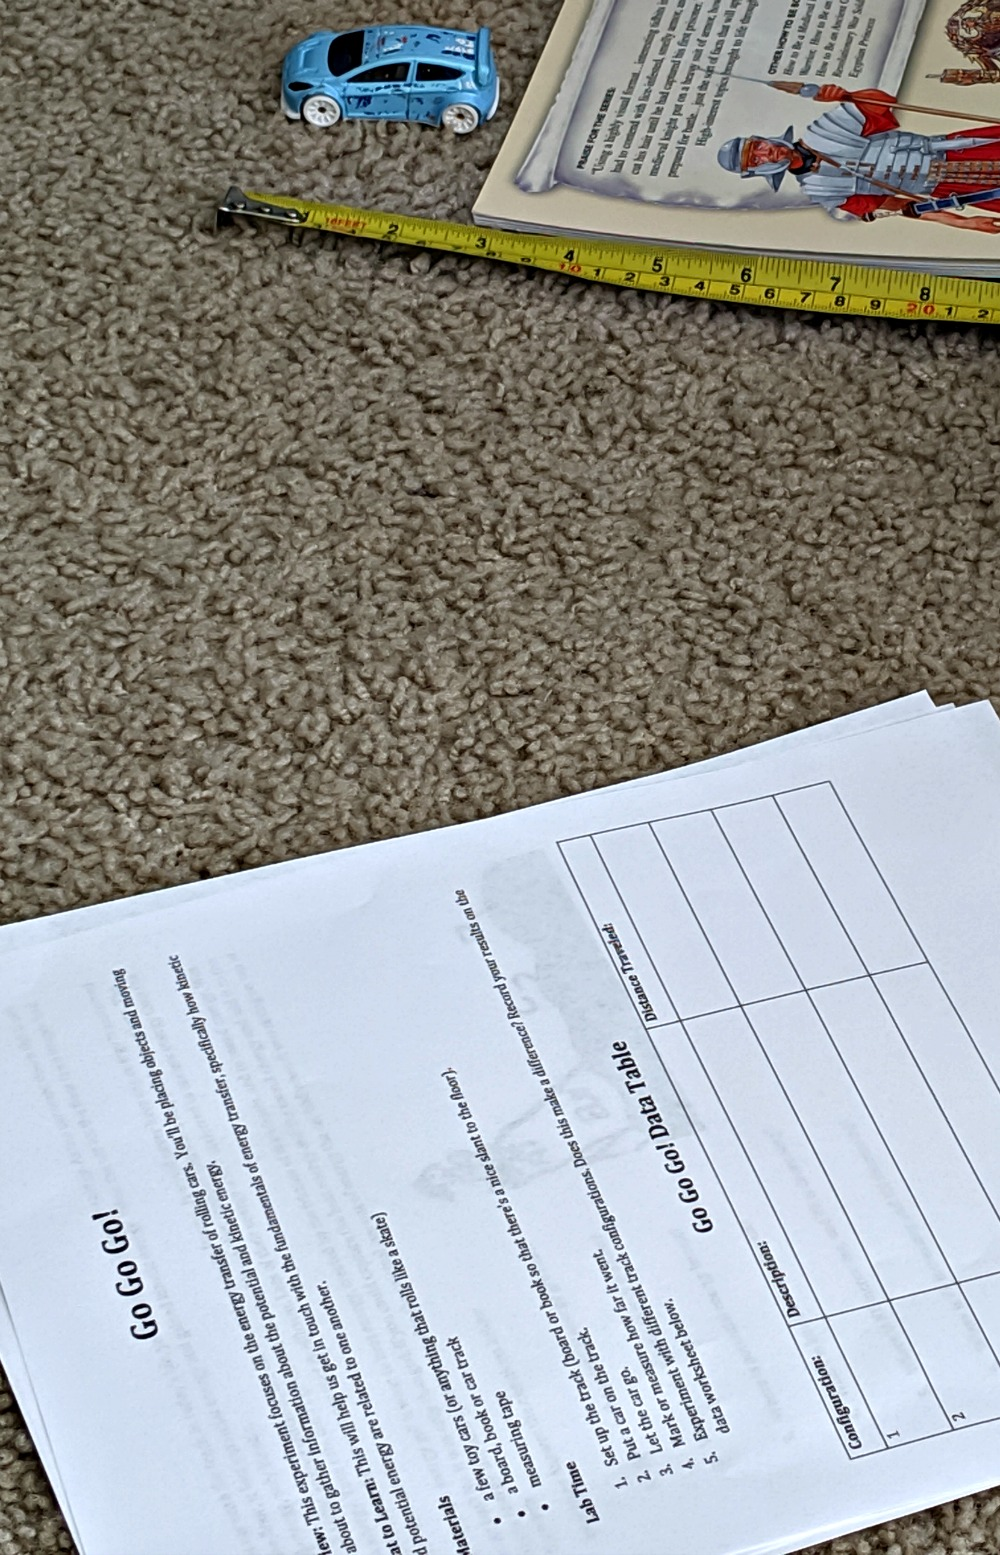 Supercharged Science Kinetic Energy experiment worksheets and measurements